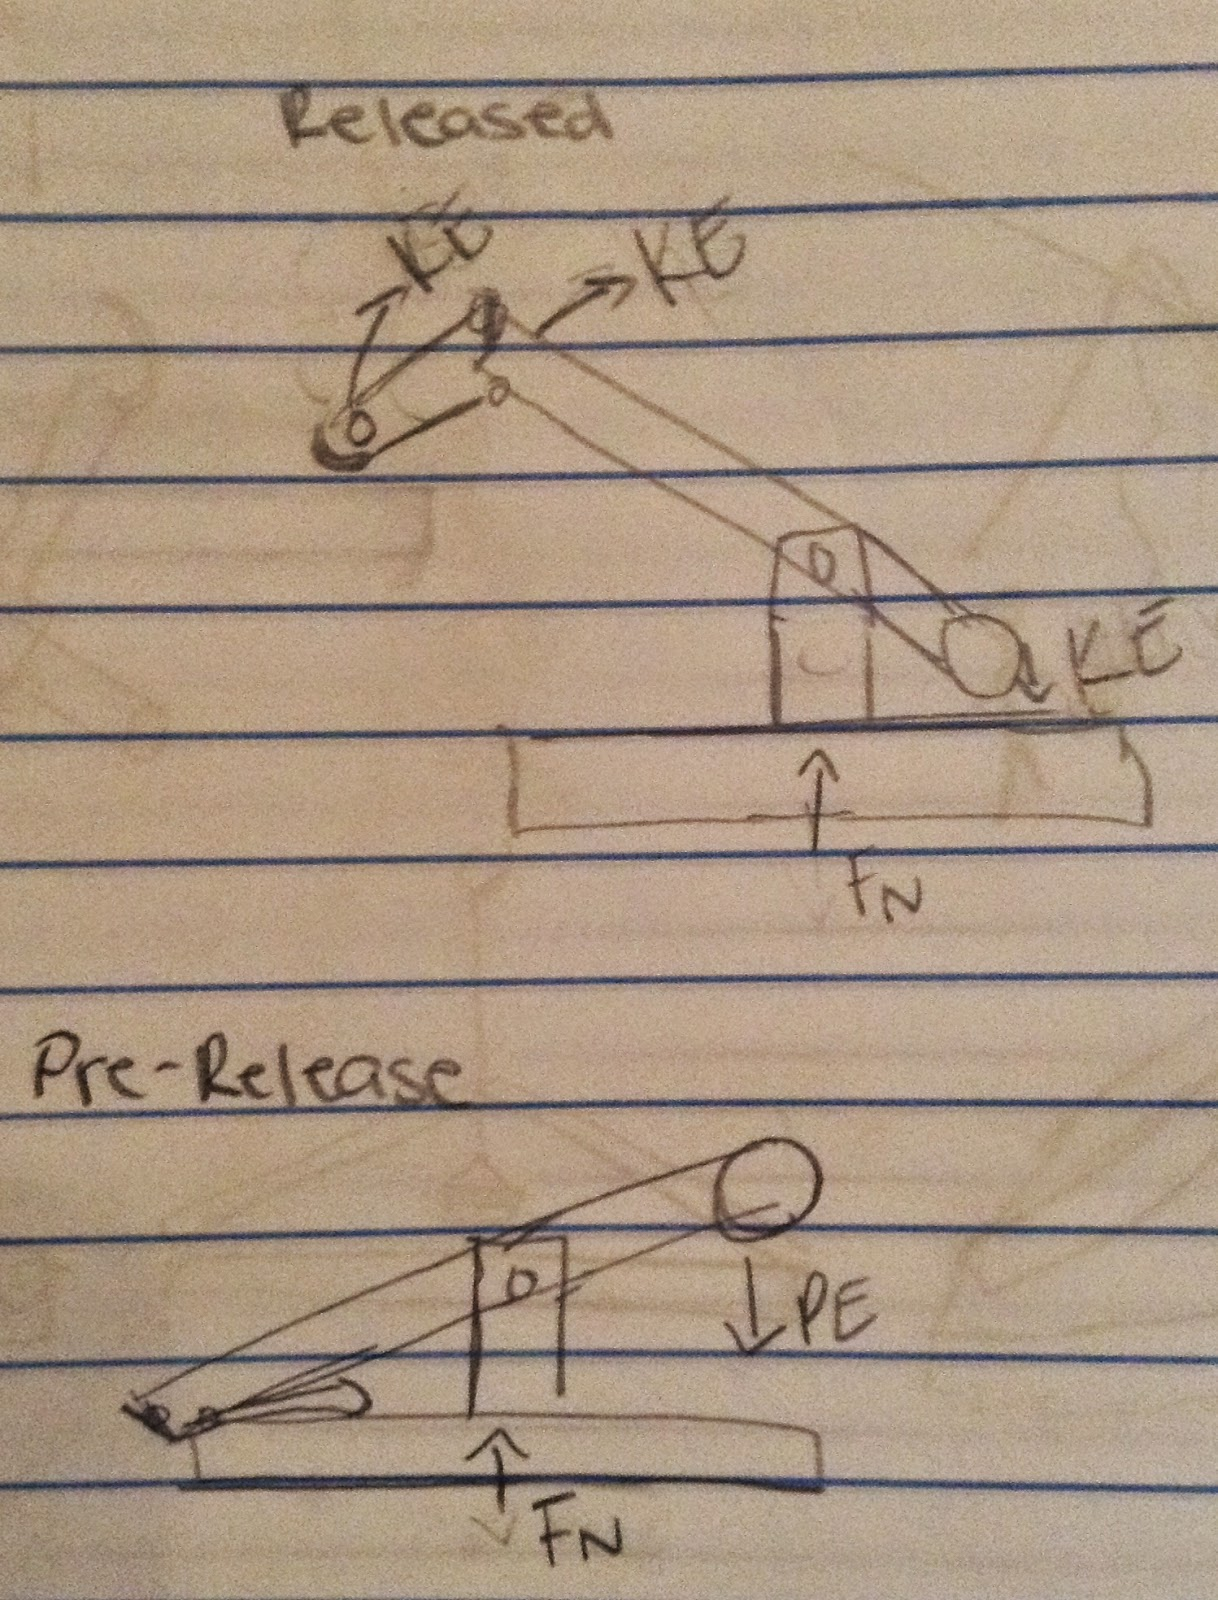 hight resolution of before launch the trebuchet arm has potential energy pe after the trebuchet arm is released it has kinetic energy ke and the arm and trebuchet